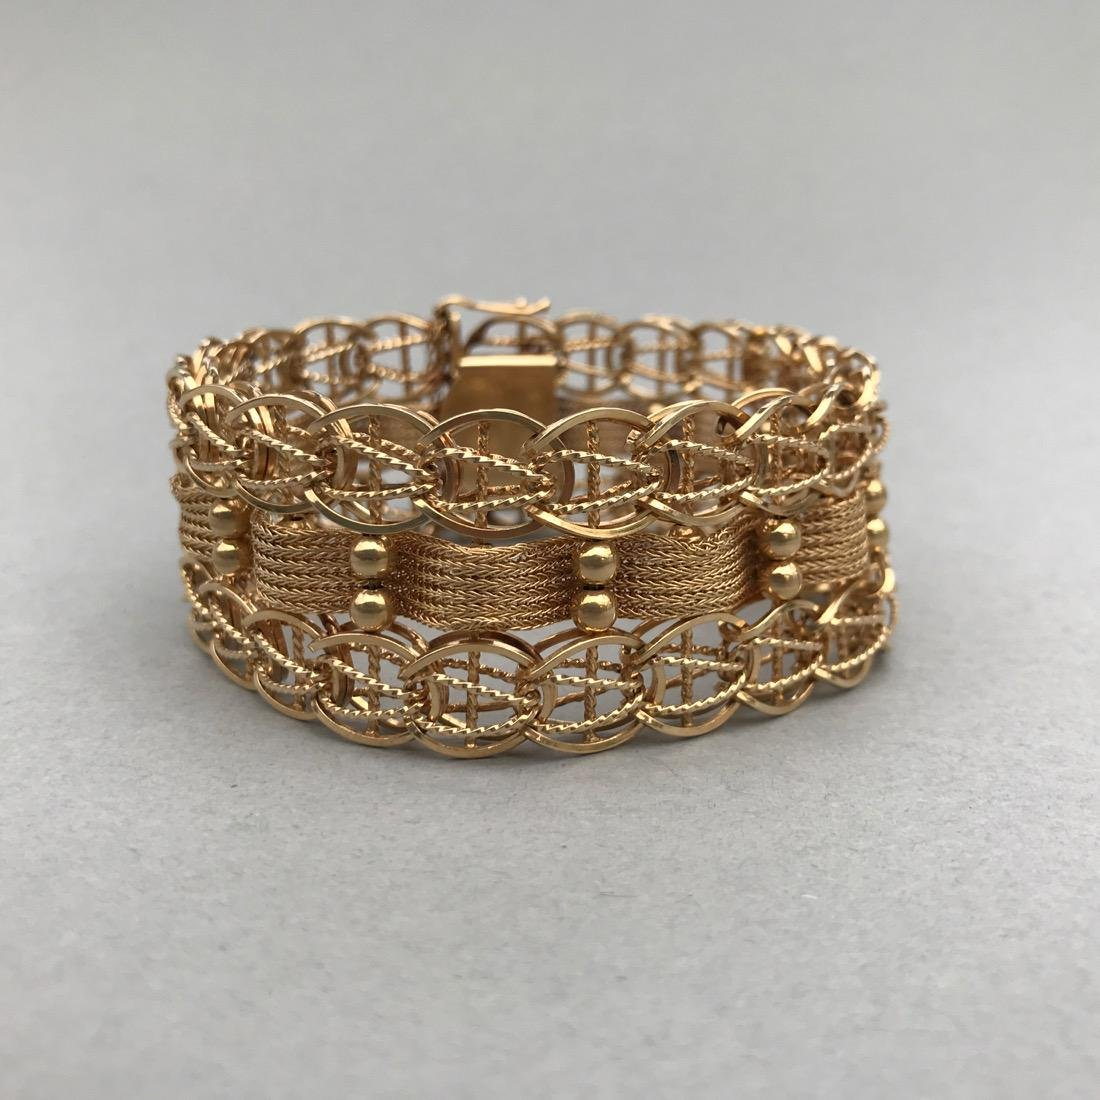 Ornate Woven Chain 14K Gold Bracelet